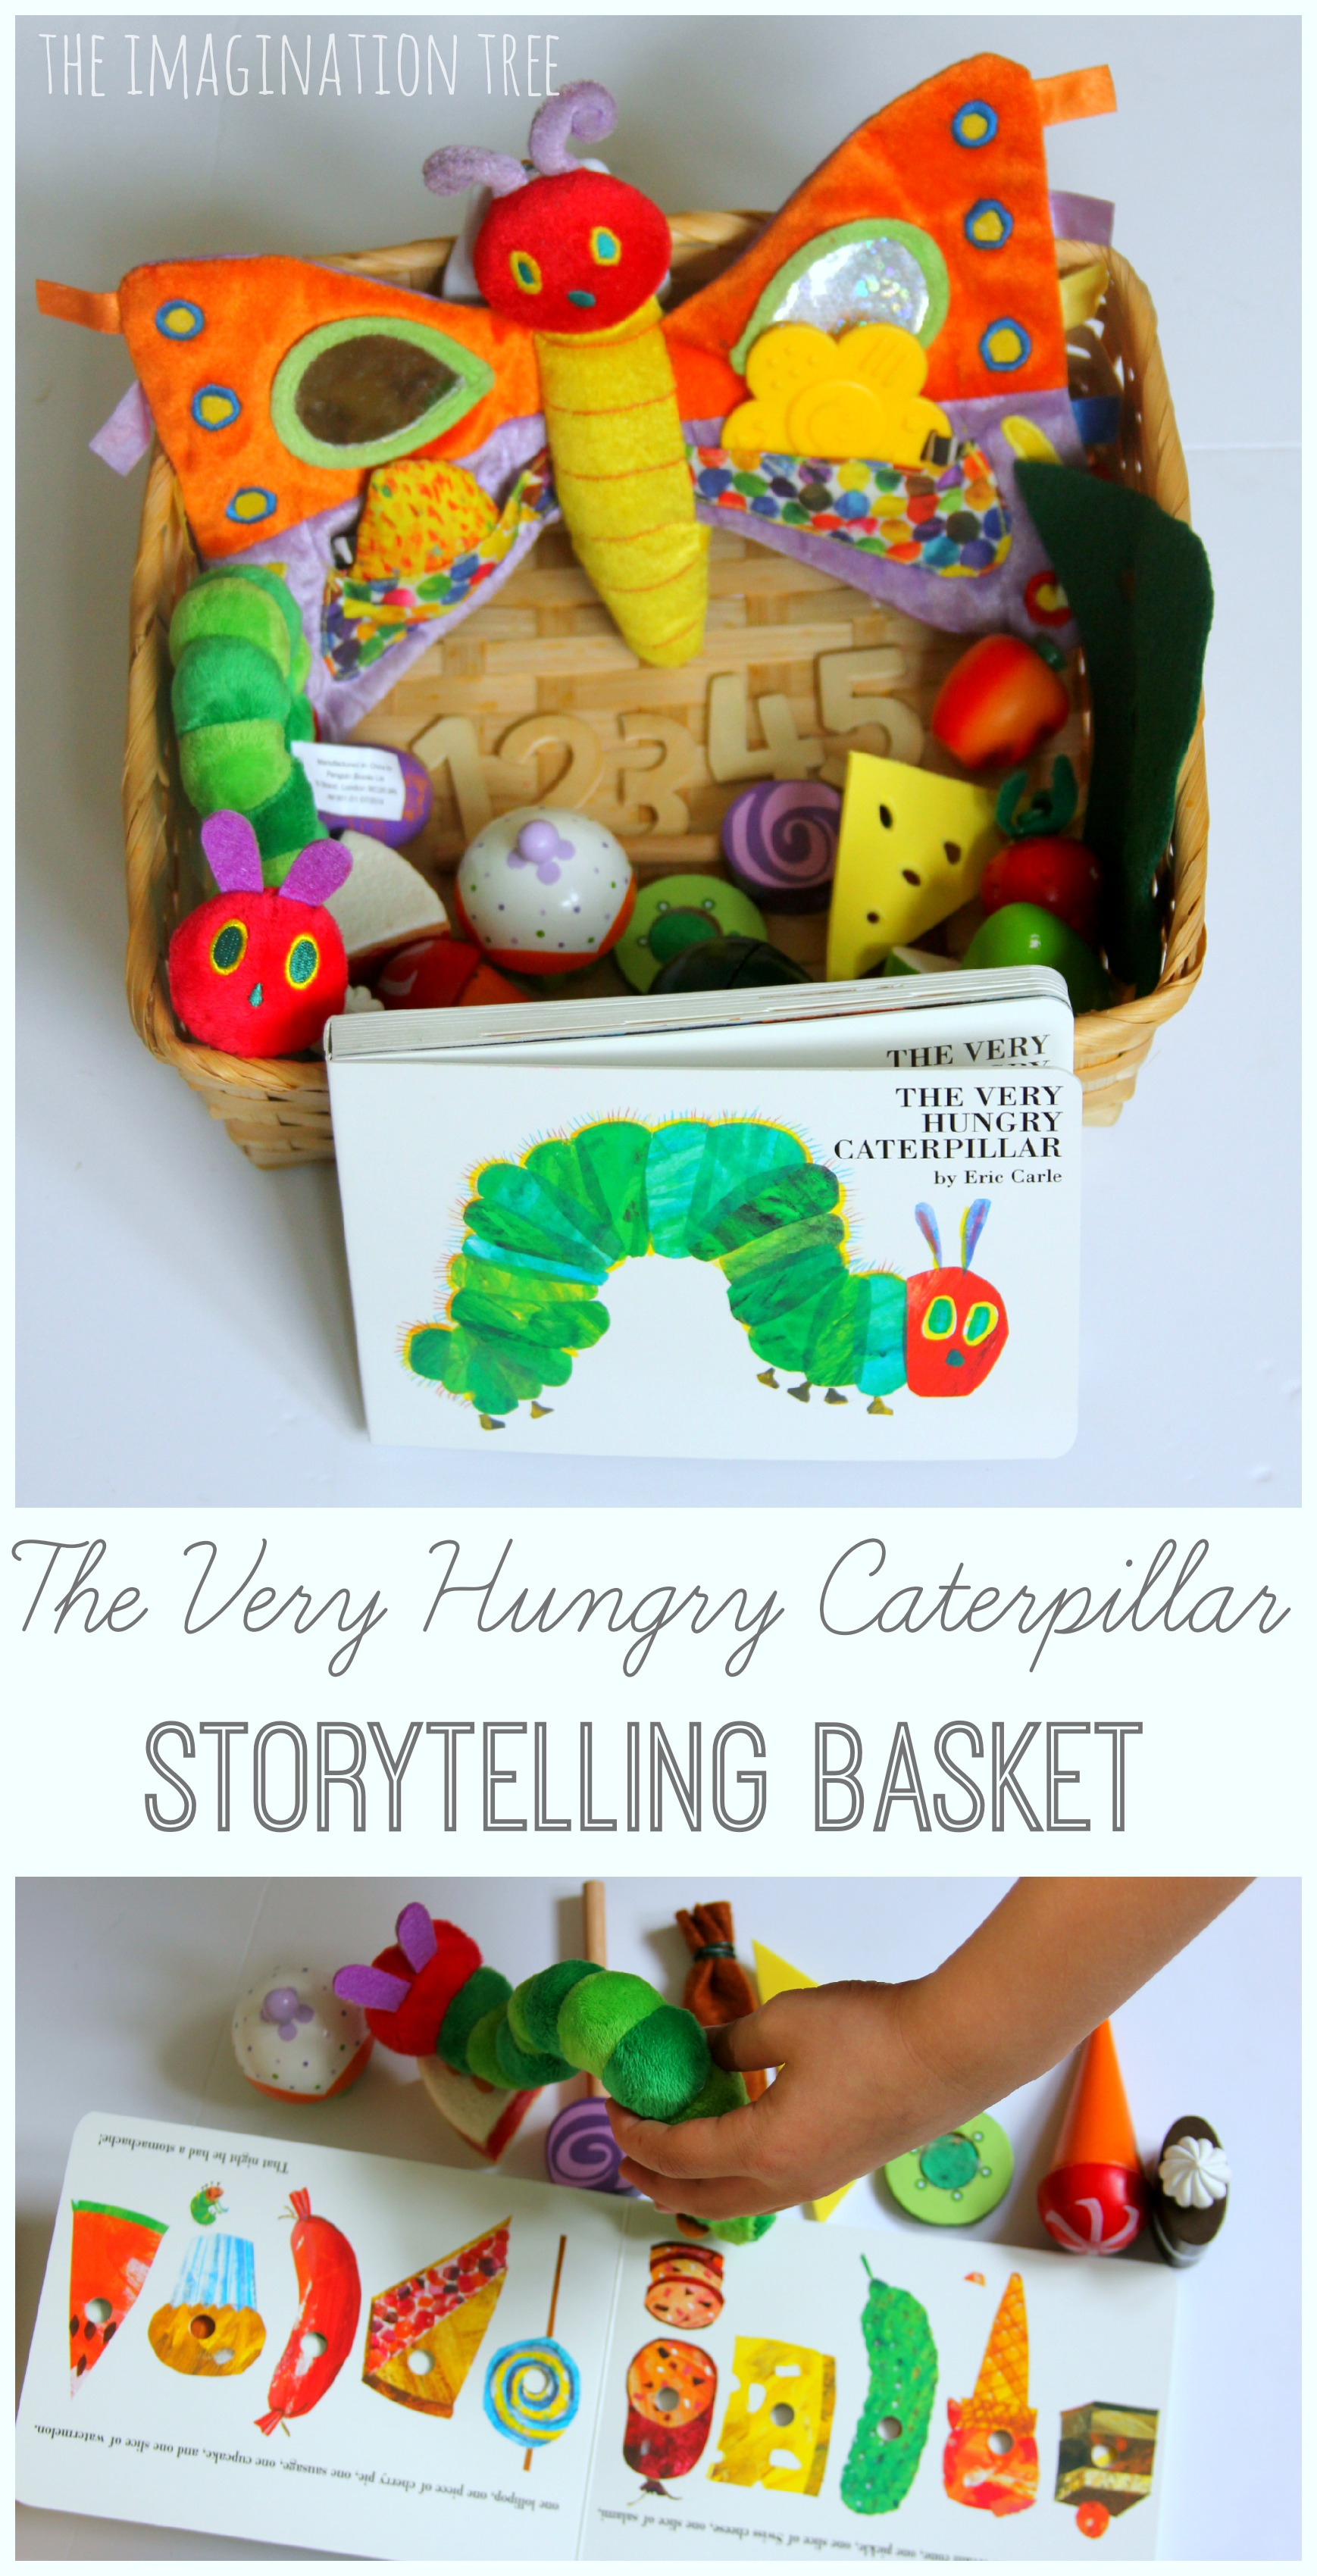 2017 05 the very hungry caterpillar lesson plans - 2017 05 The Very Hungry Caterpillar Lesson Plans 8